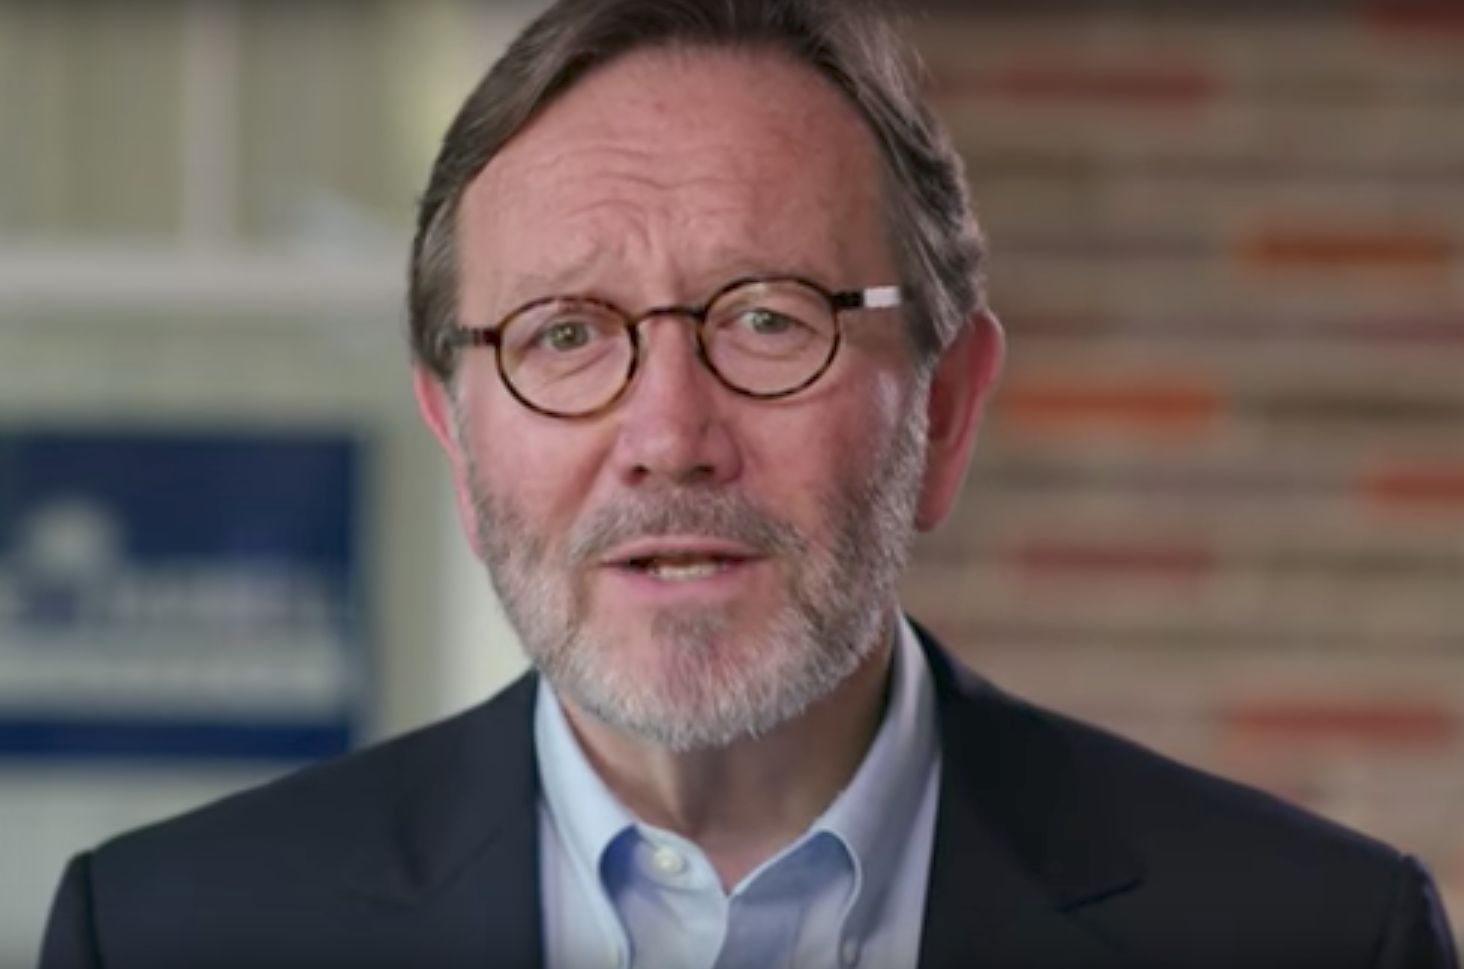 South Carolina Democrat Archie Parnell commissioned a poll showing him catching up but still10 percentage points behind